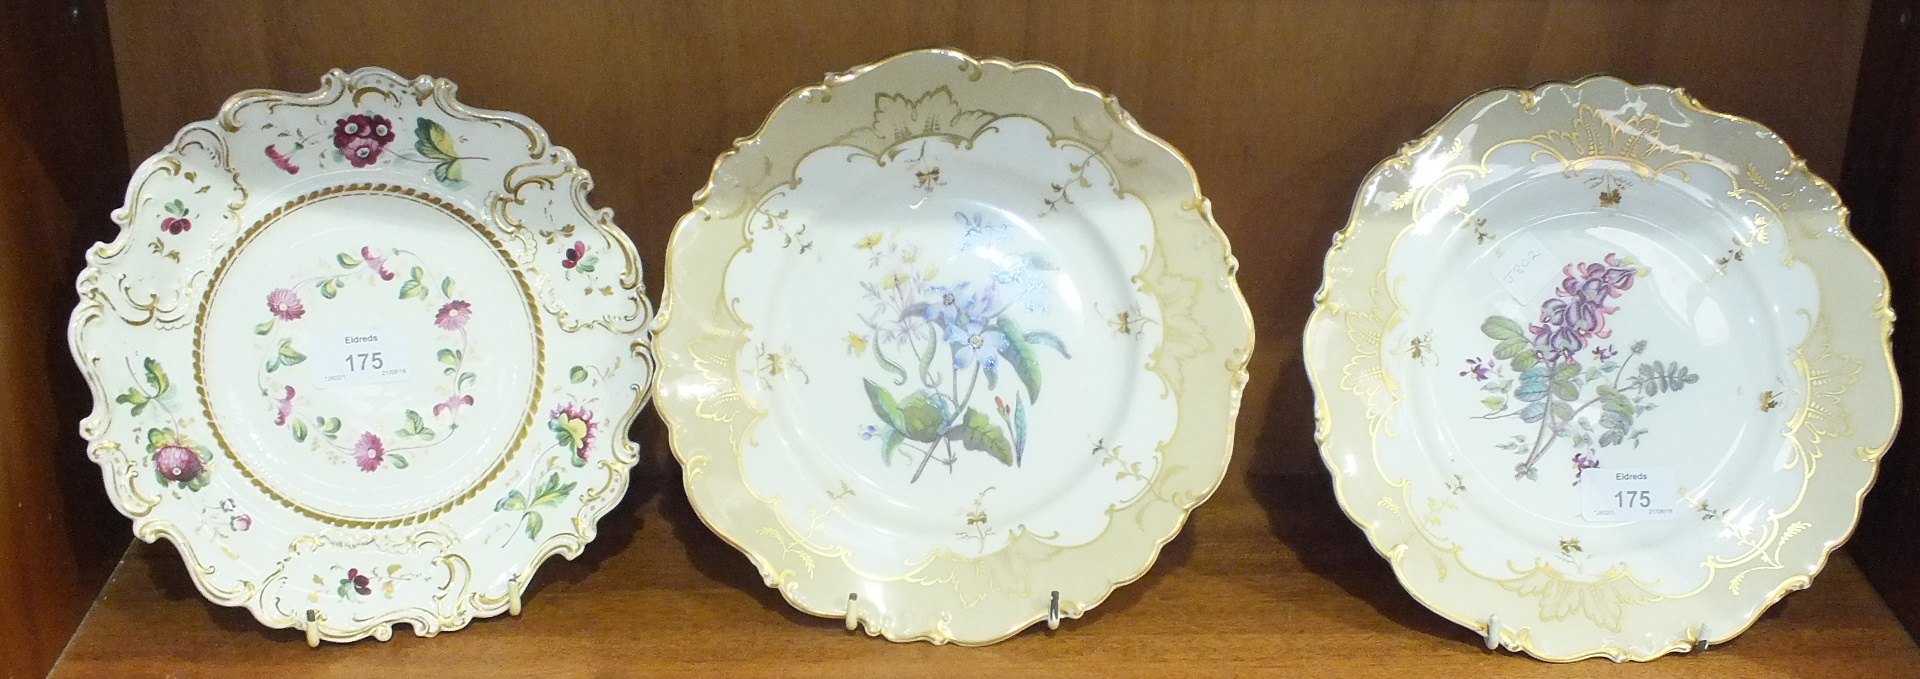 Lot 175 - A pair of 19th century English floral painted porcelain plates, 23cm diameter and one other, (3).